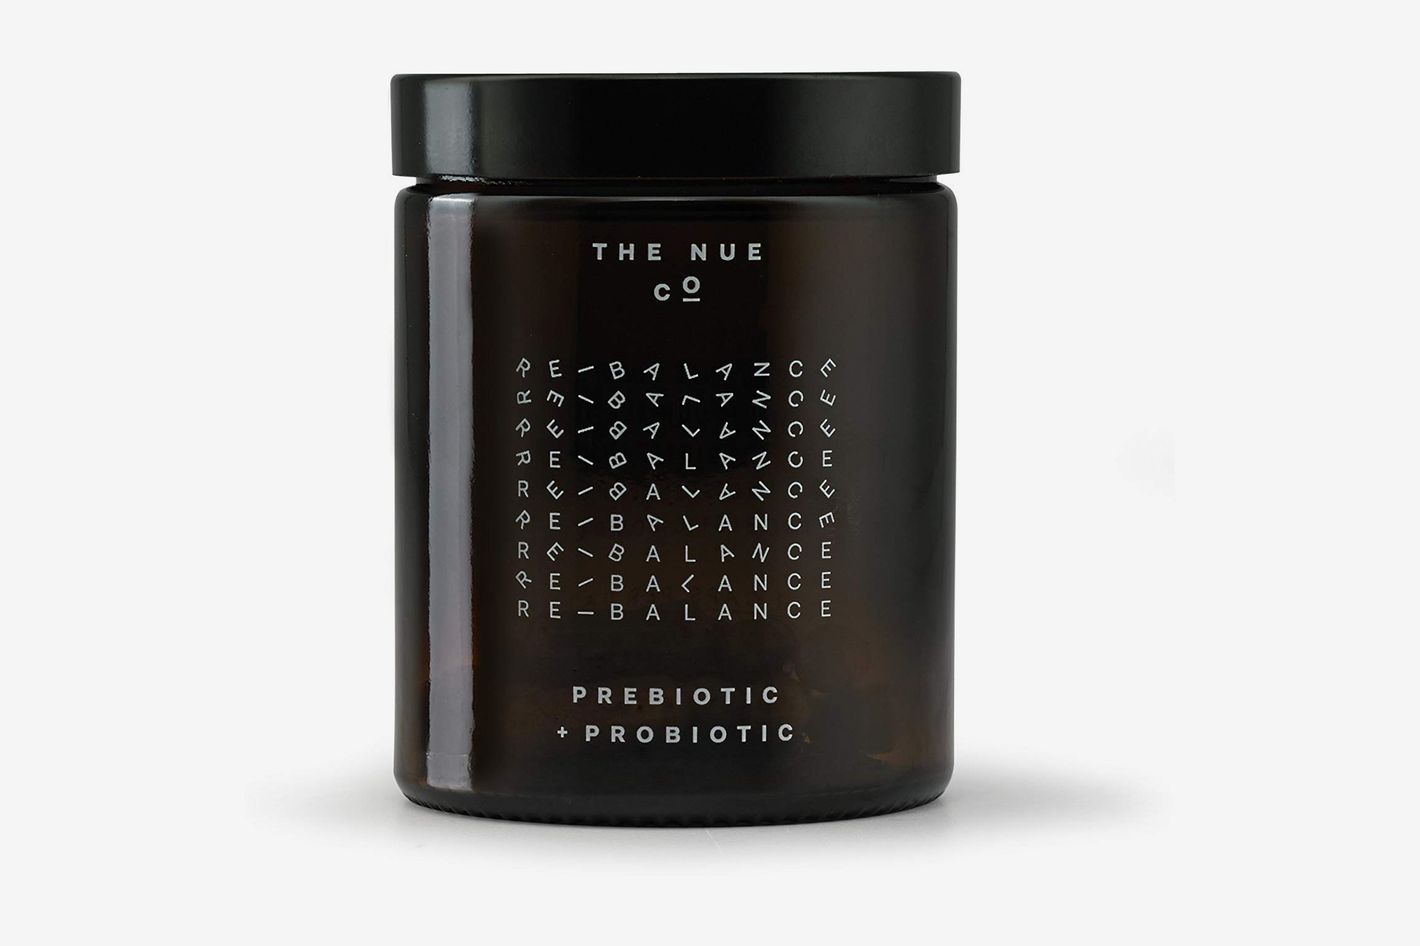 The Nue Co Prebiotic Probiotic